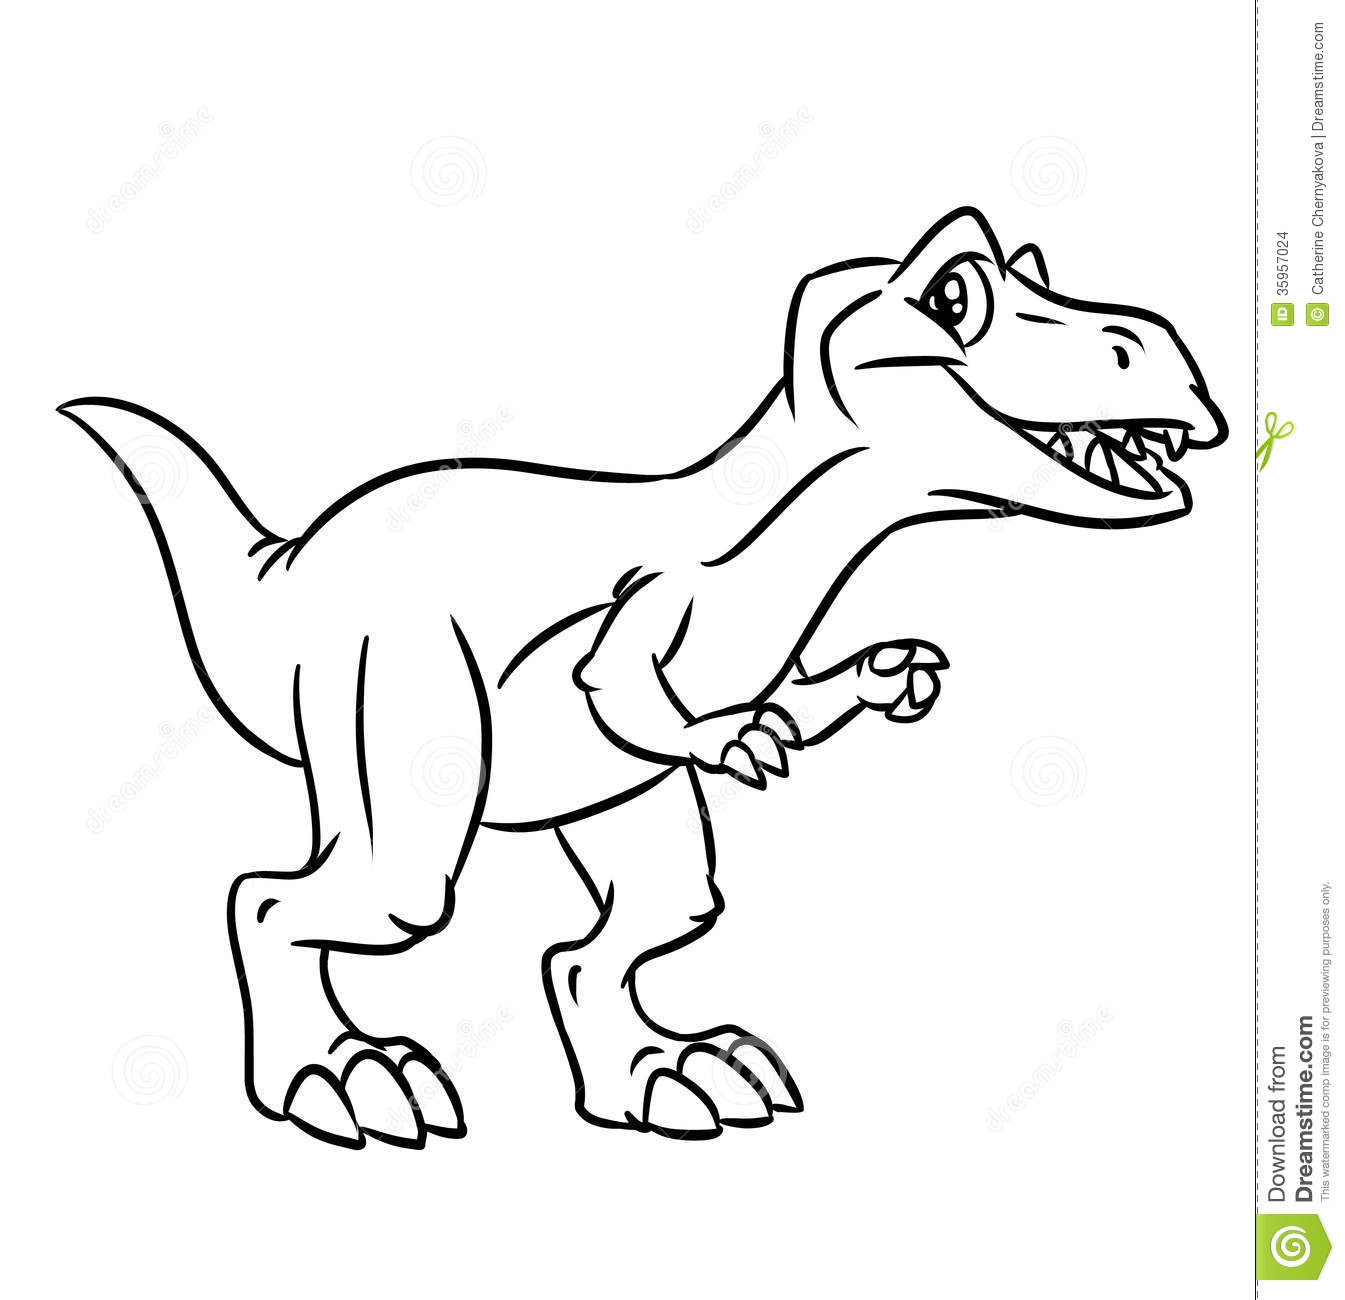 Dinosaur Coloring Pages Stock Illustration Illustration Of Coloring